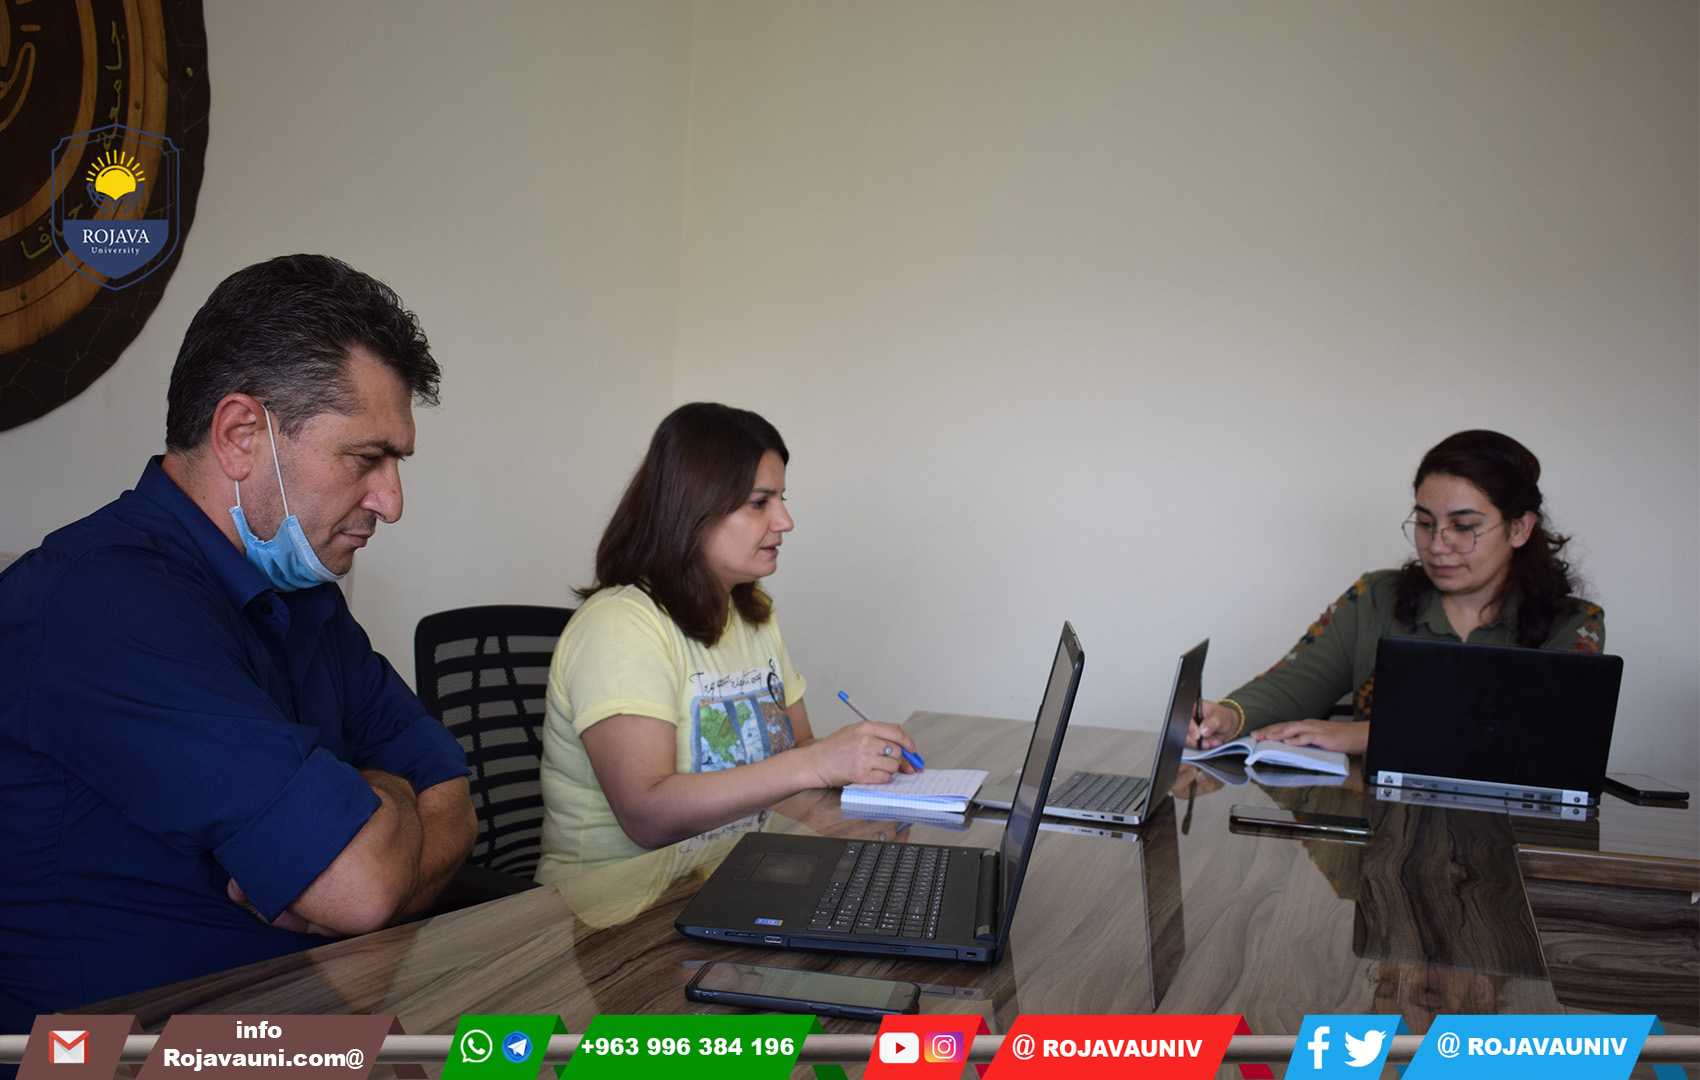 The meeting between the University of Rojava and the Kurdish Culture Office in Rome